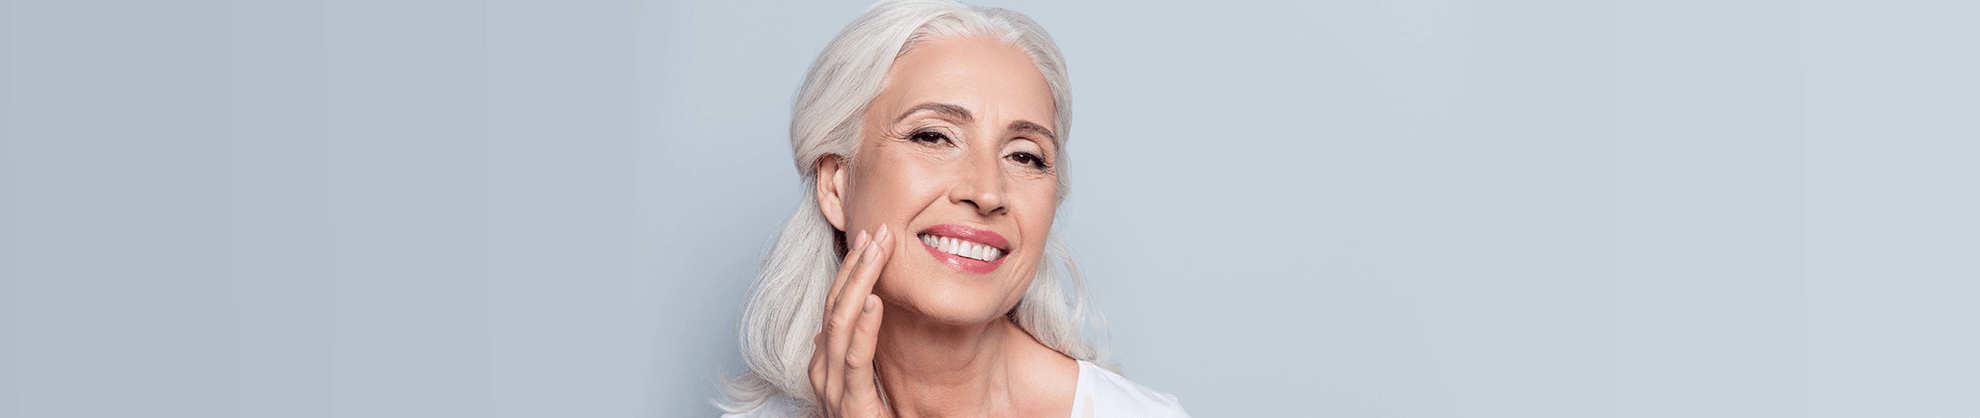 Dental Implants in North Brunswick